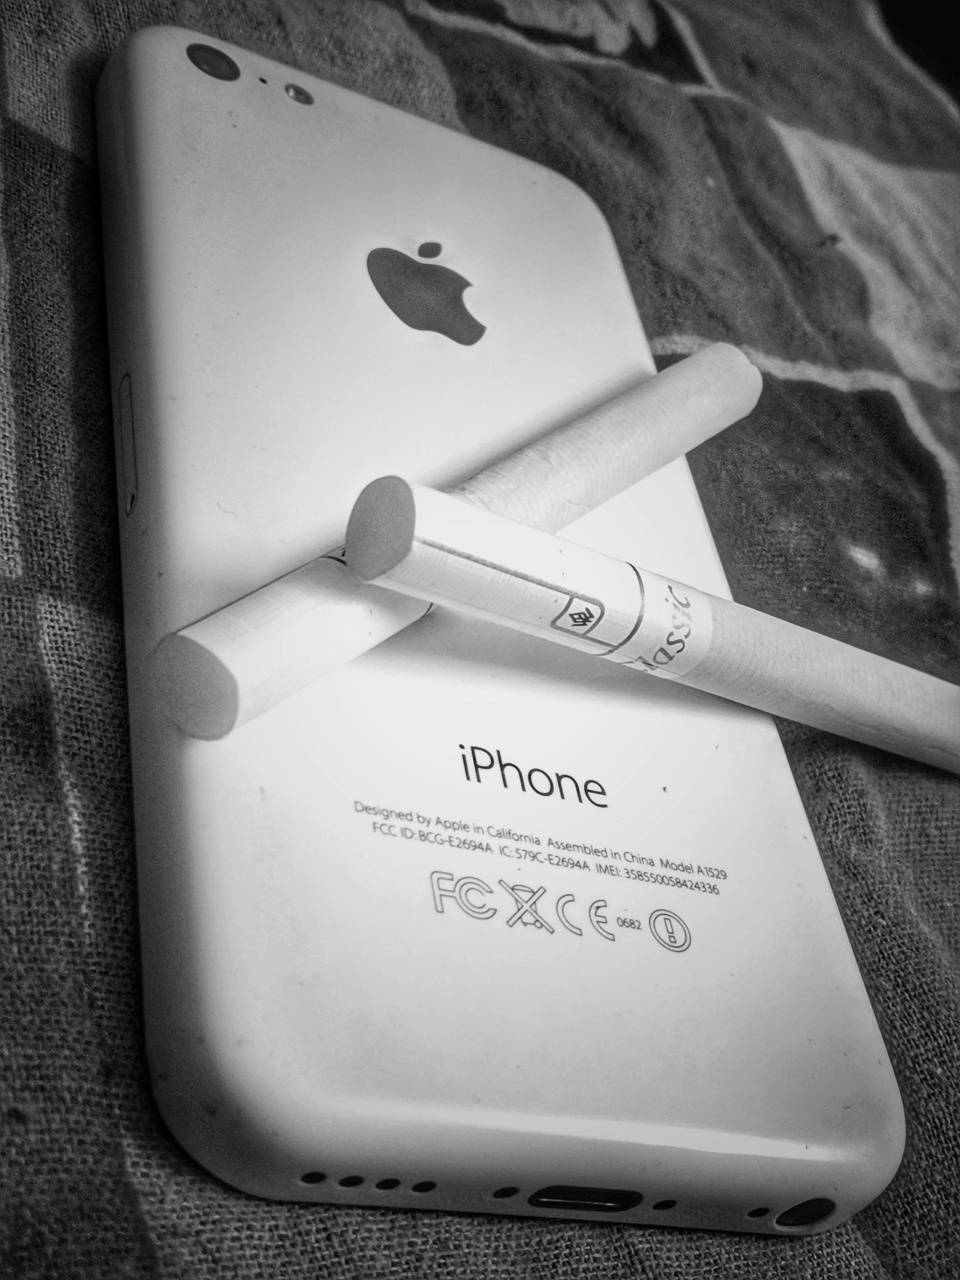 Iphone Smoke Wallpaper By Raufk263 26 Free On Zedge